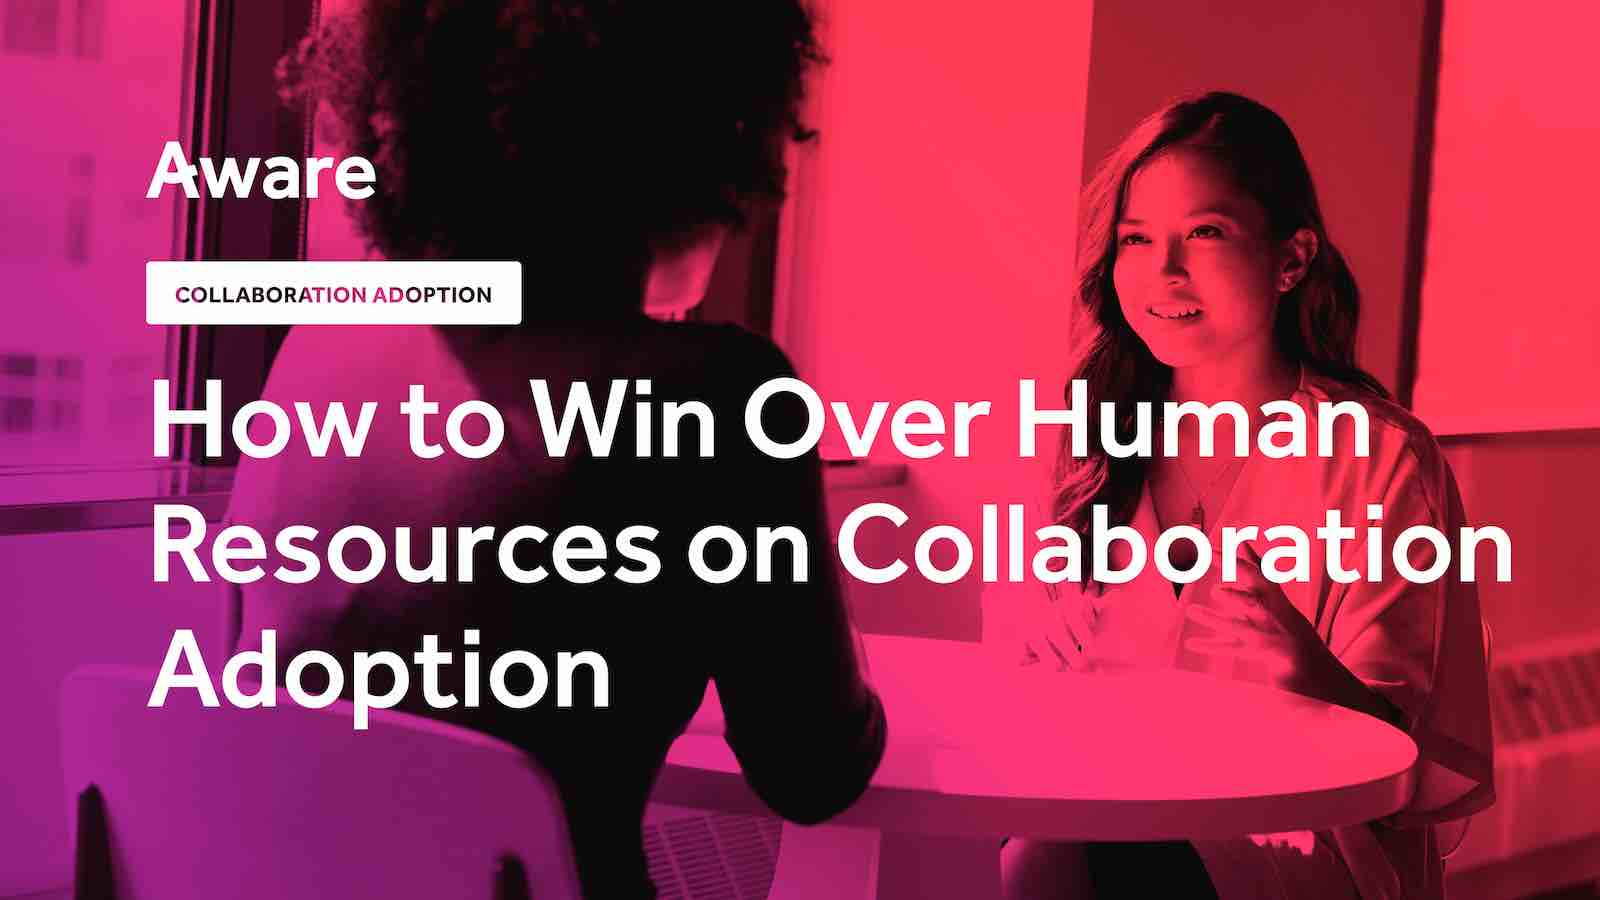 How to Win Over Human Resources on Collaboration Adoption